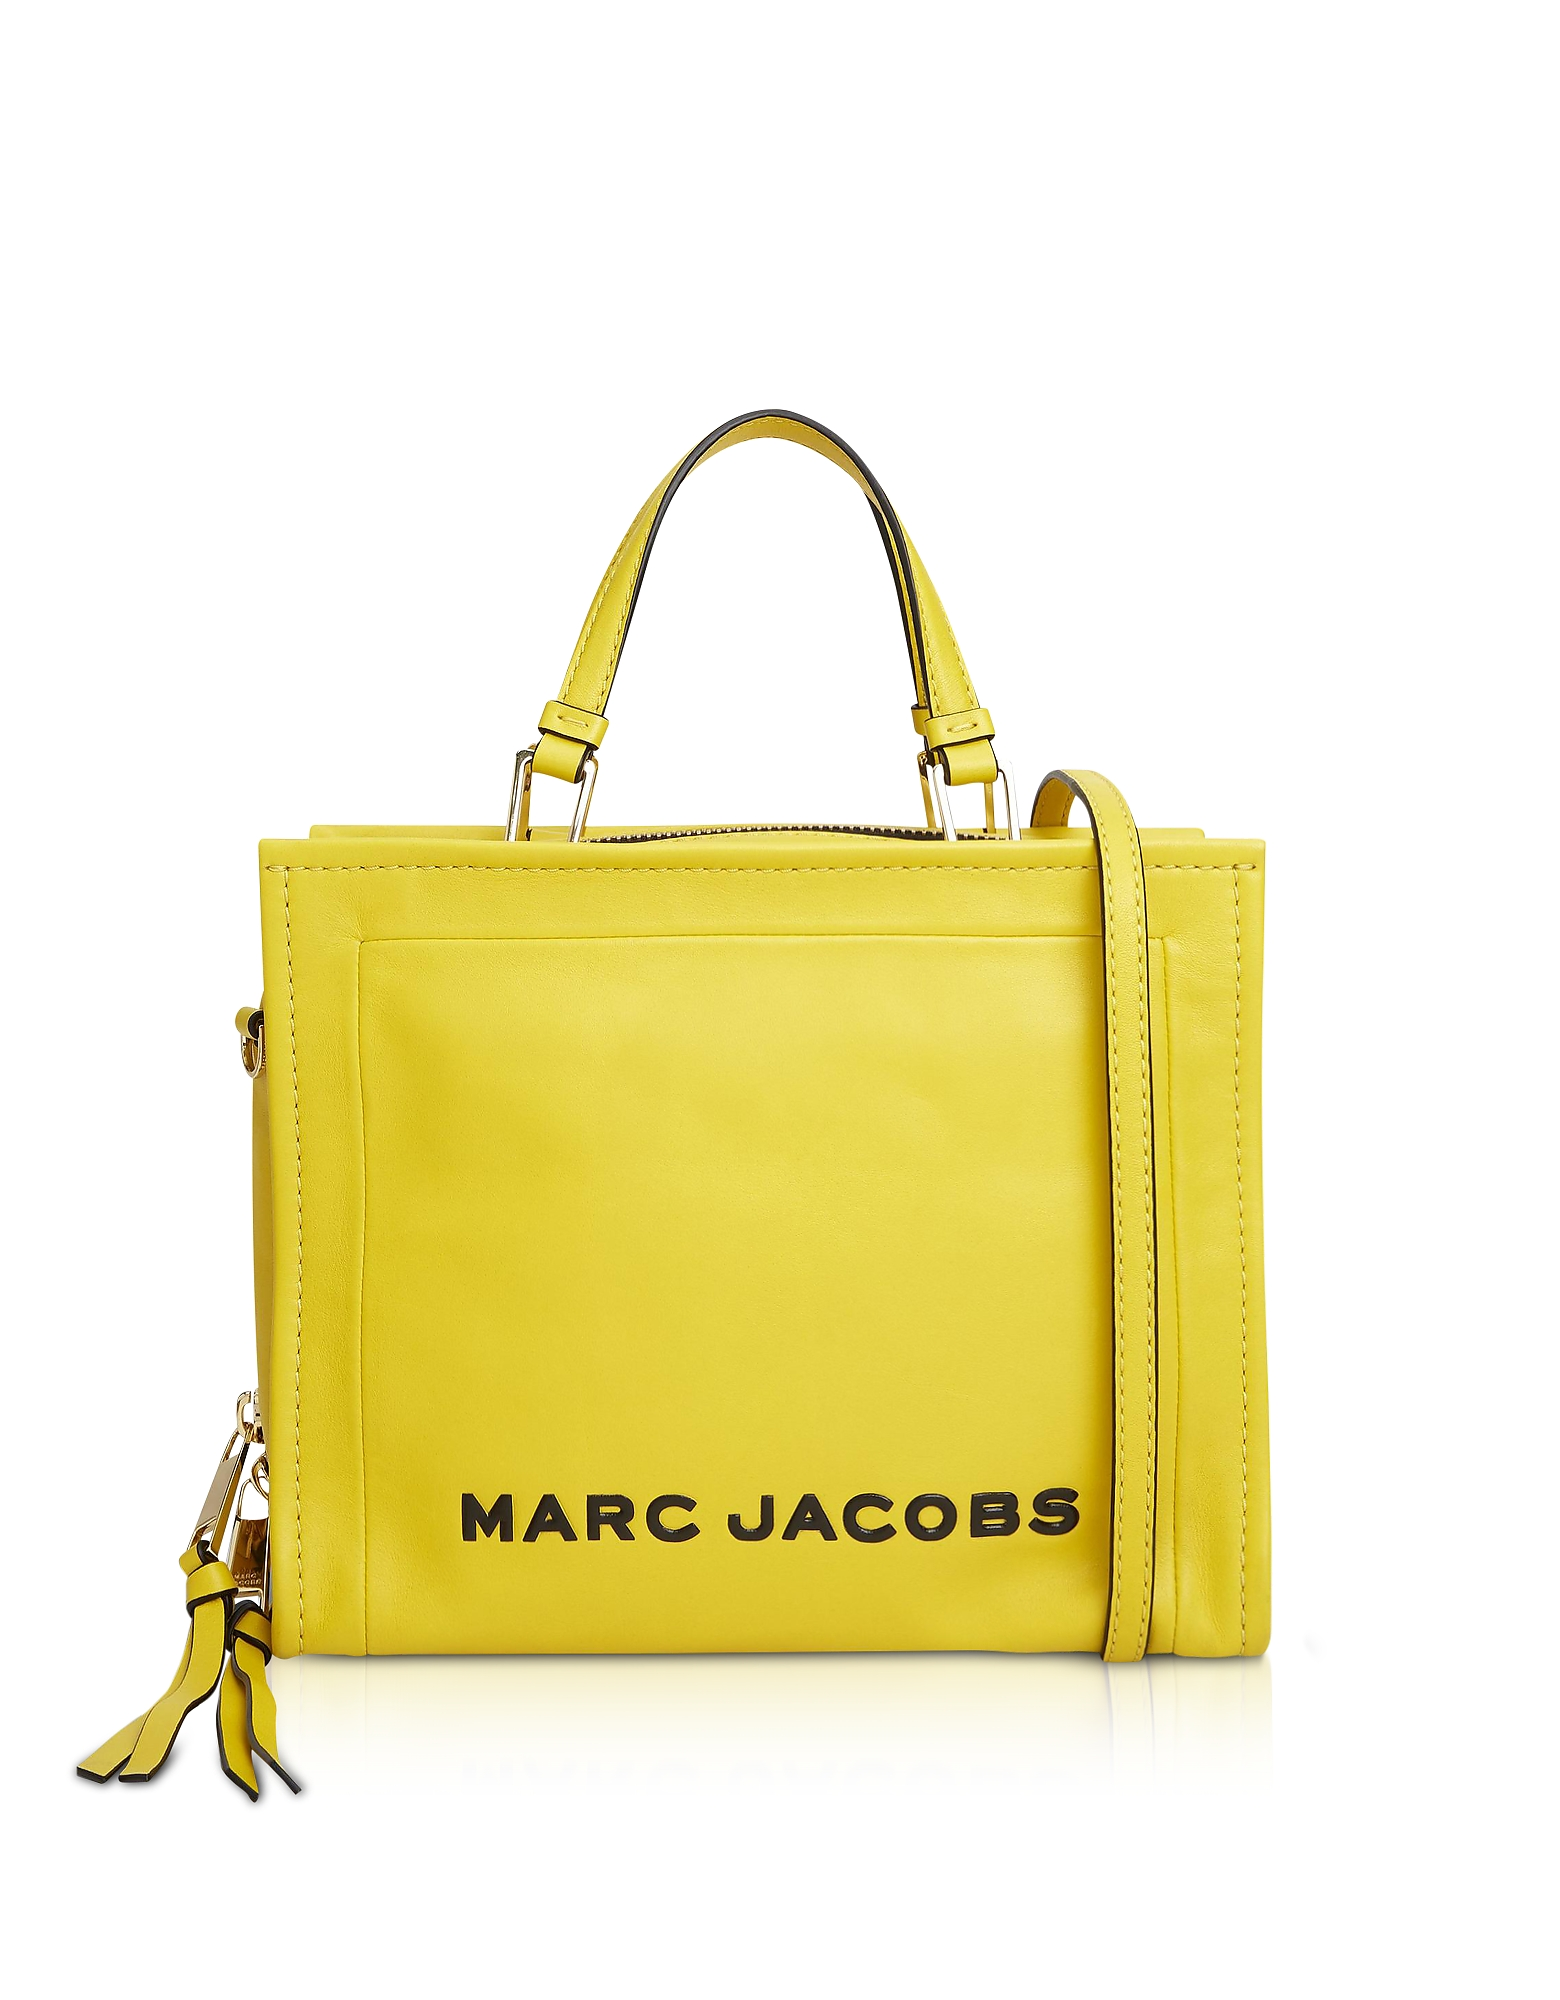 Marc Jacobs Handbags, The Box Shopper Bag